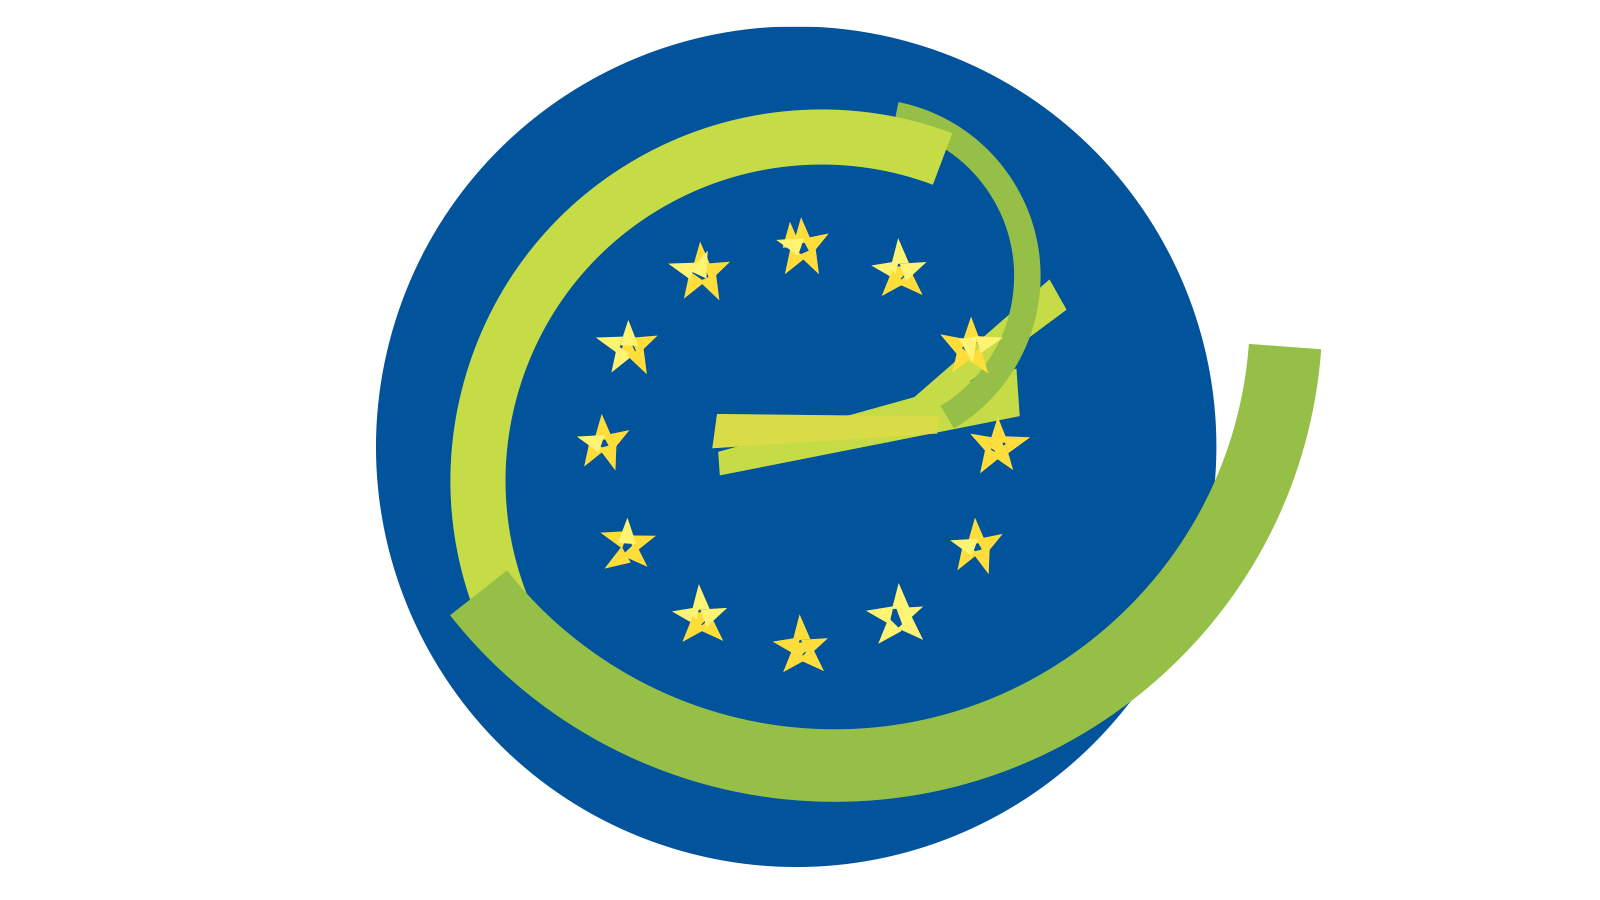 The logo of the Council of Europe built out of simple shapes.